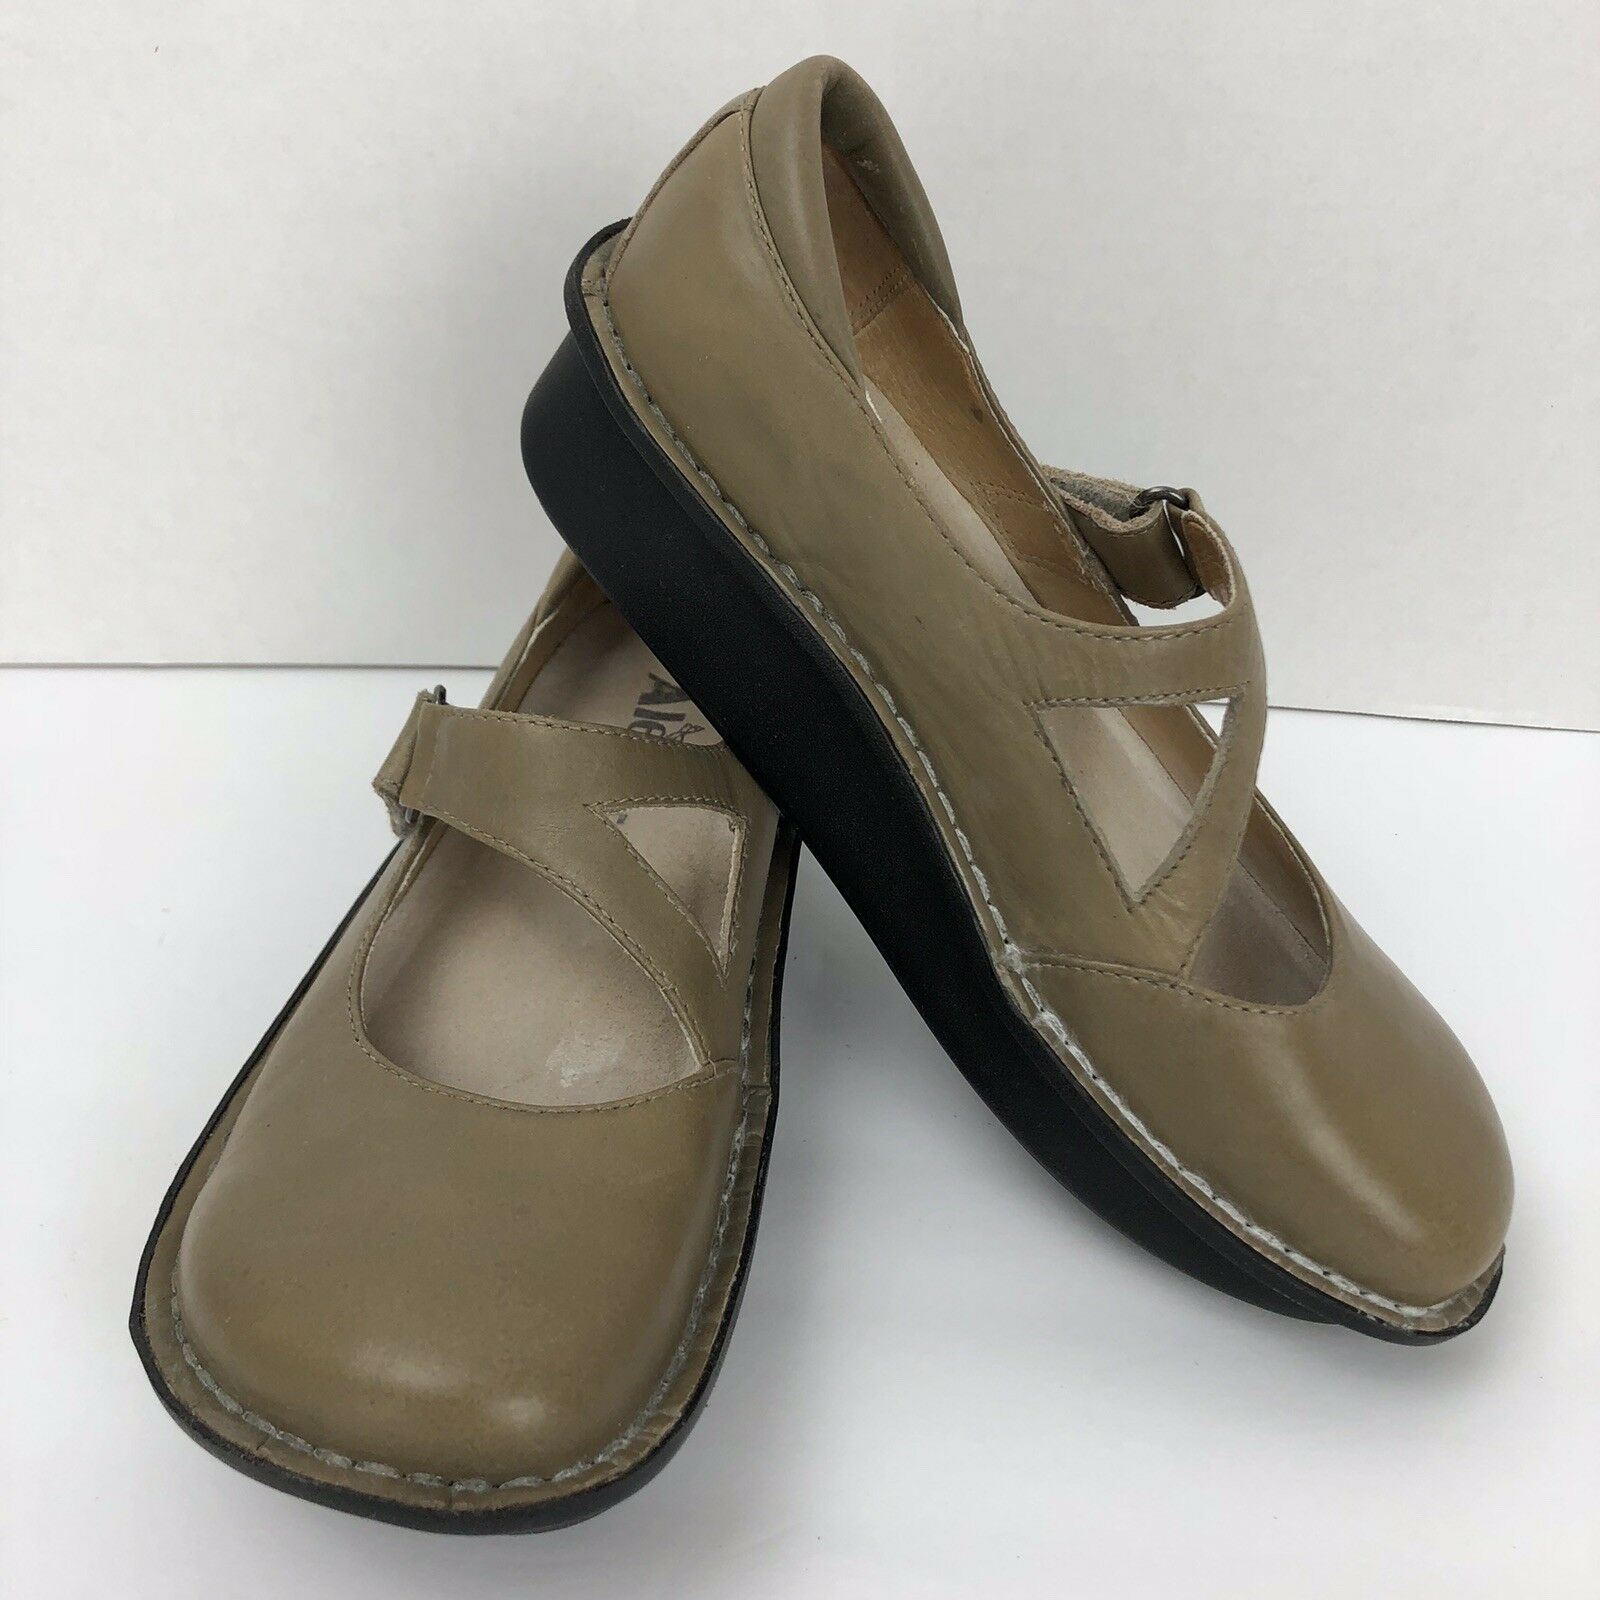 Alegria By Nude PG Lite Tan Beige Nude By Leder Mary Jane Schuhes Sz 5.5 Day-623 7d2bdb